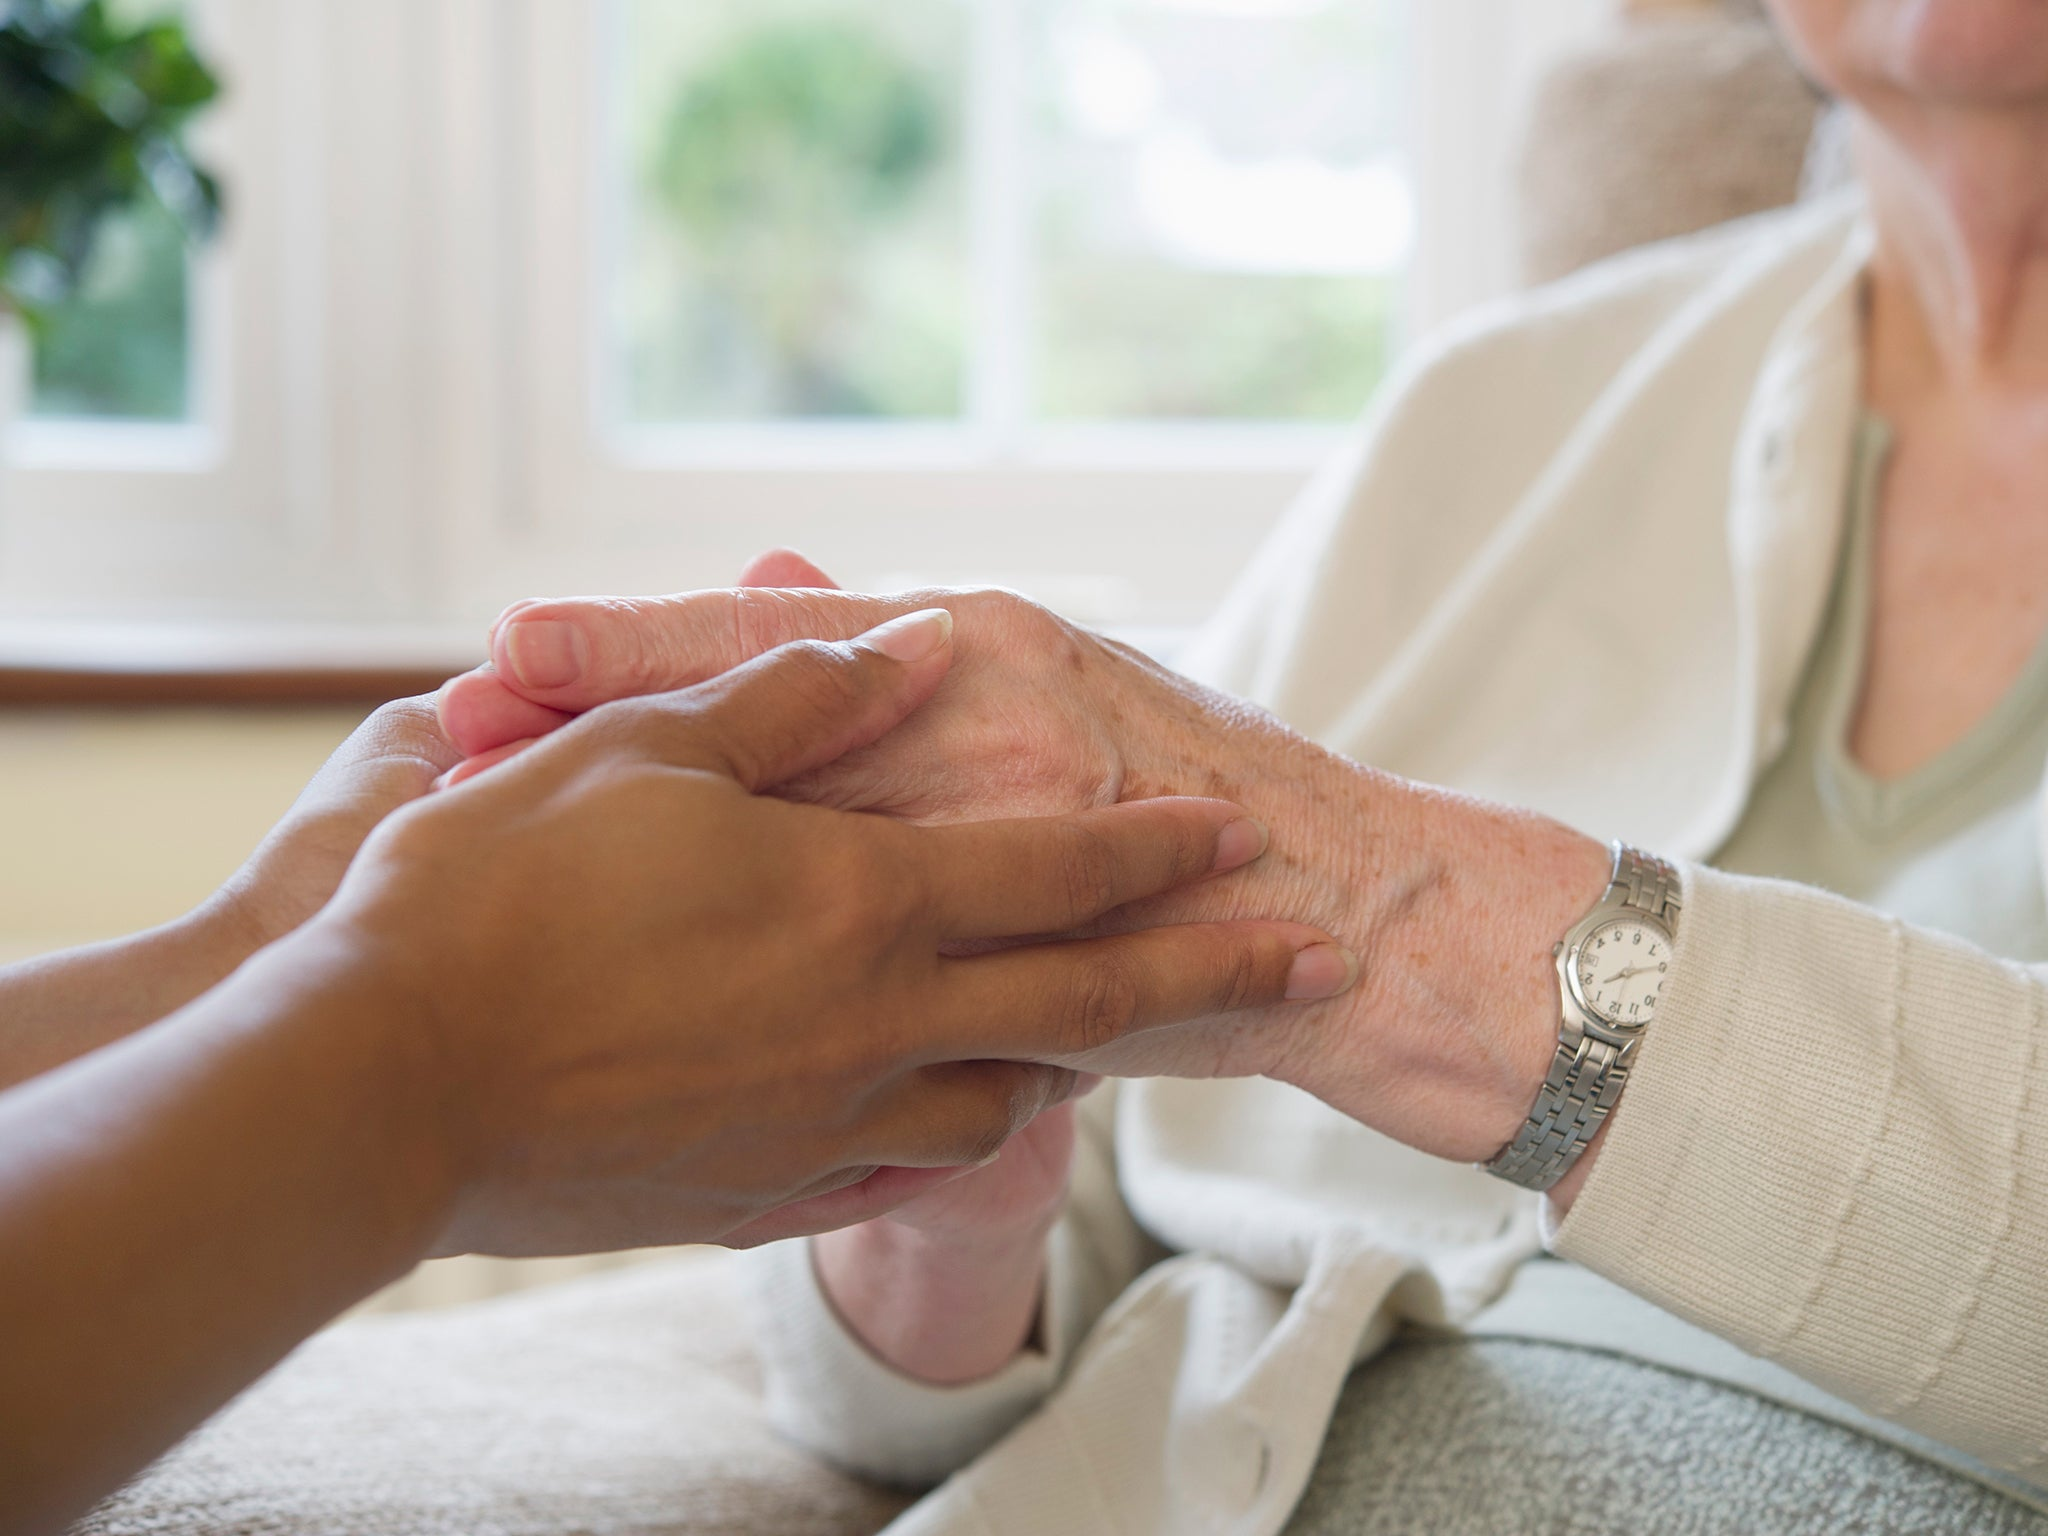 England's social care system needs extra £7bn annually to avoid collapse, MPs warn